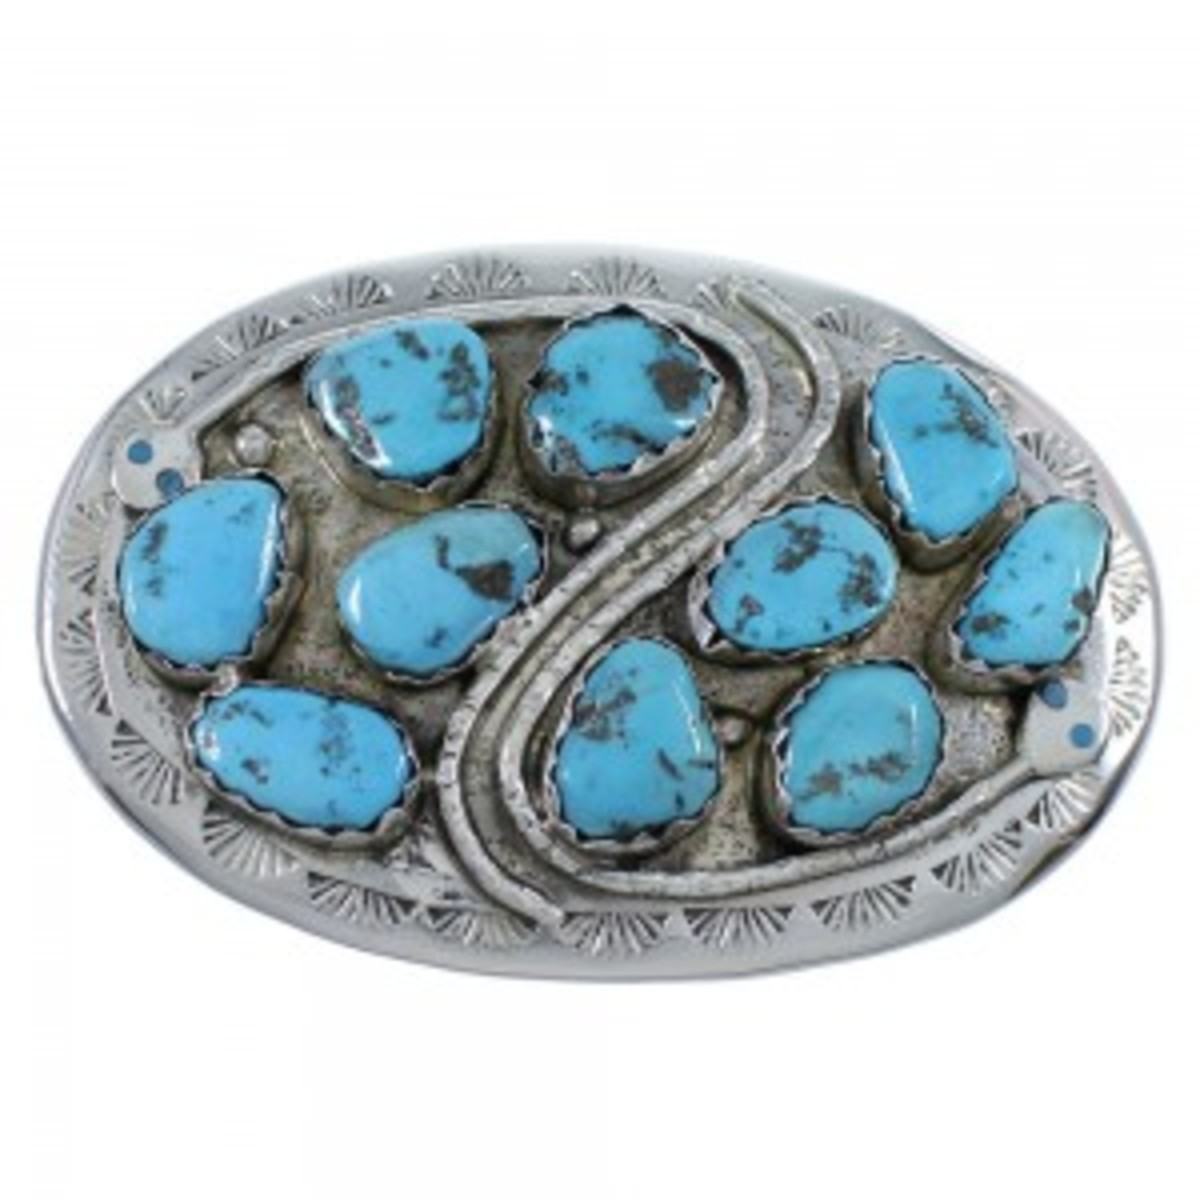 Zuni Effie Calavaza Snake Turquoise sterling silver buckle.